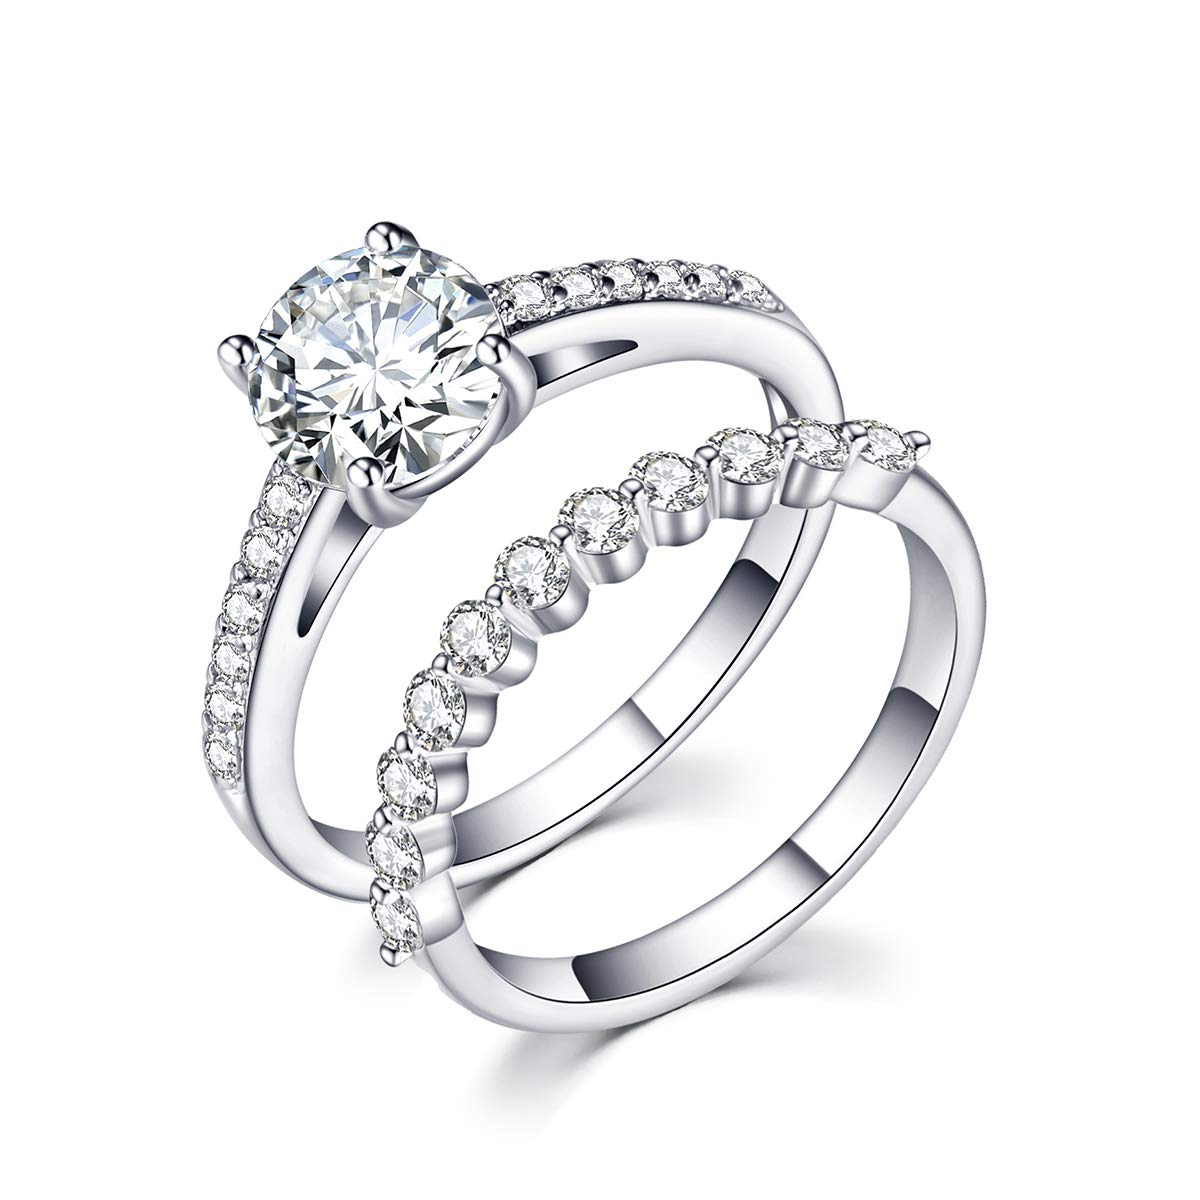 rongji jewelry Cubic Zirconia Wedding Stacking Ring - Sterling Silver Gem Grade CZ Ring Set for Women Engagement,Size7